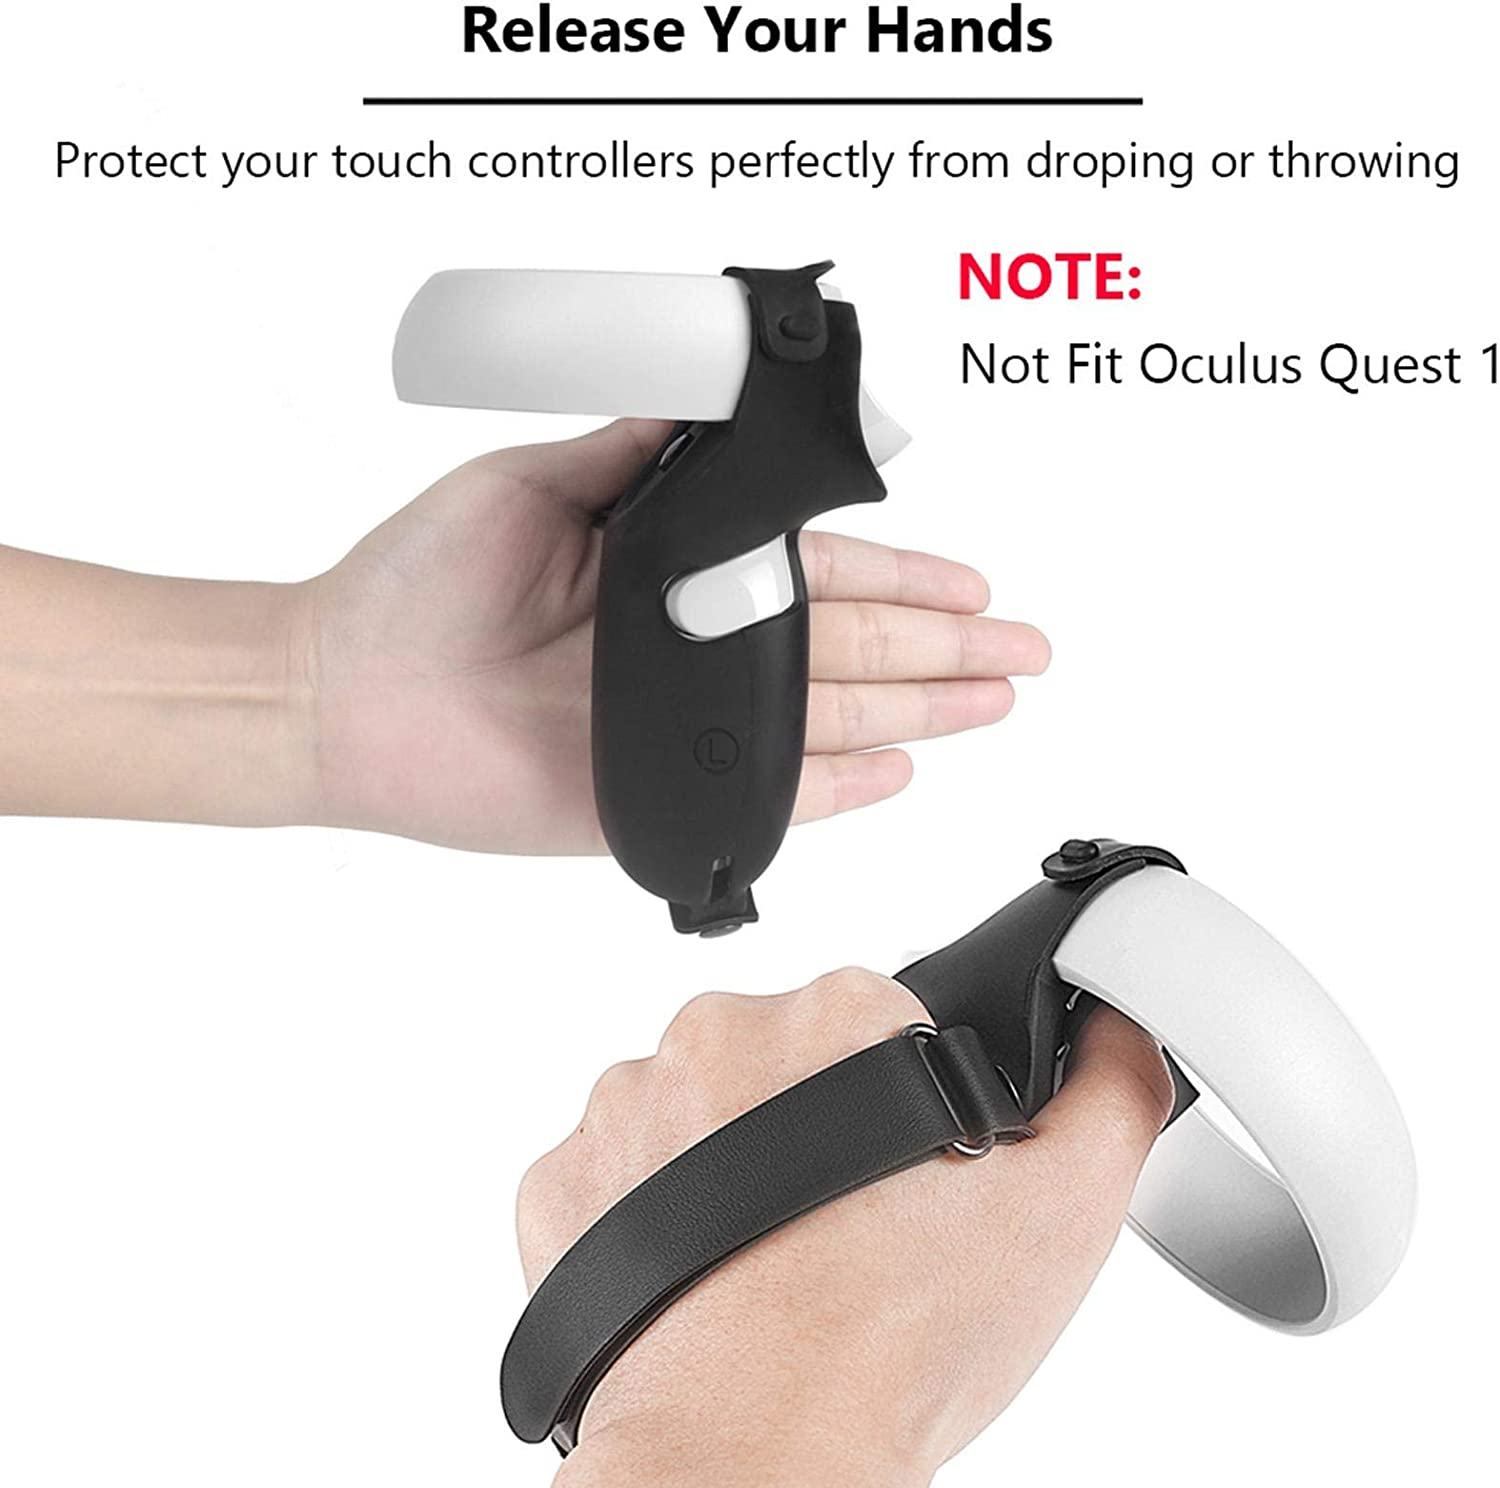 VR Controller Grip Skin Cover Waterproof Protector Case for Oculus Quest 2 VR Handle Non-Slip Silicone Sleeve Protective Case